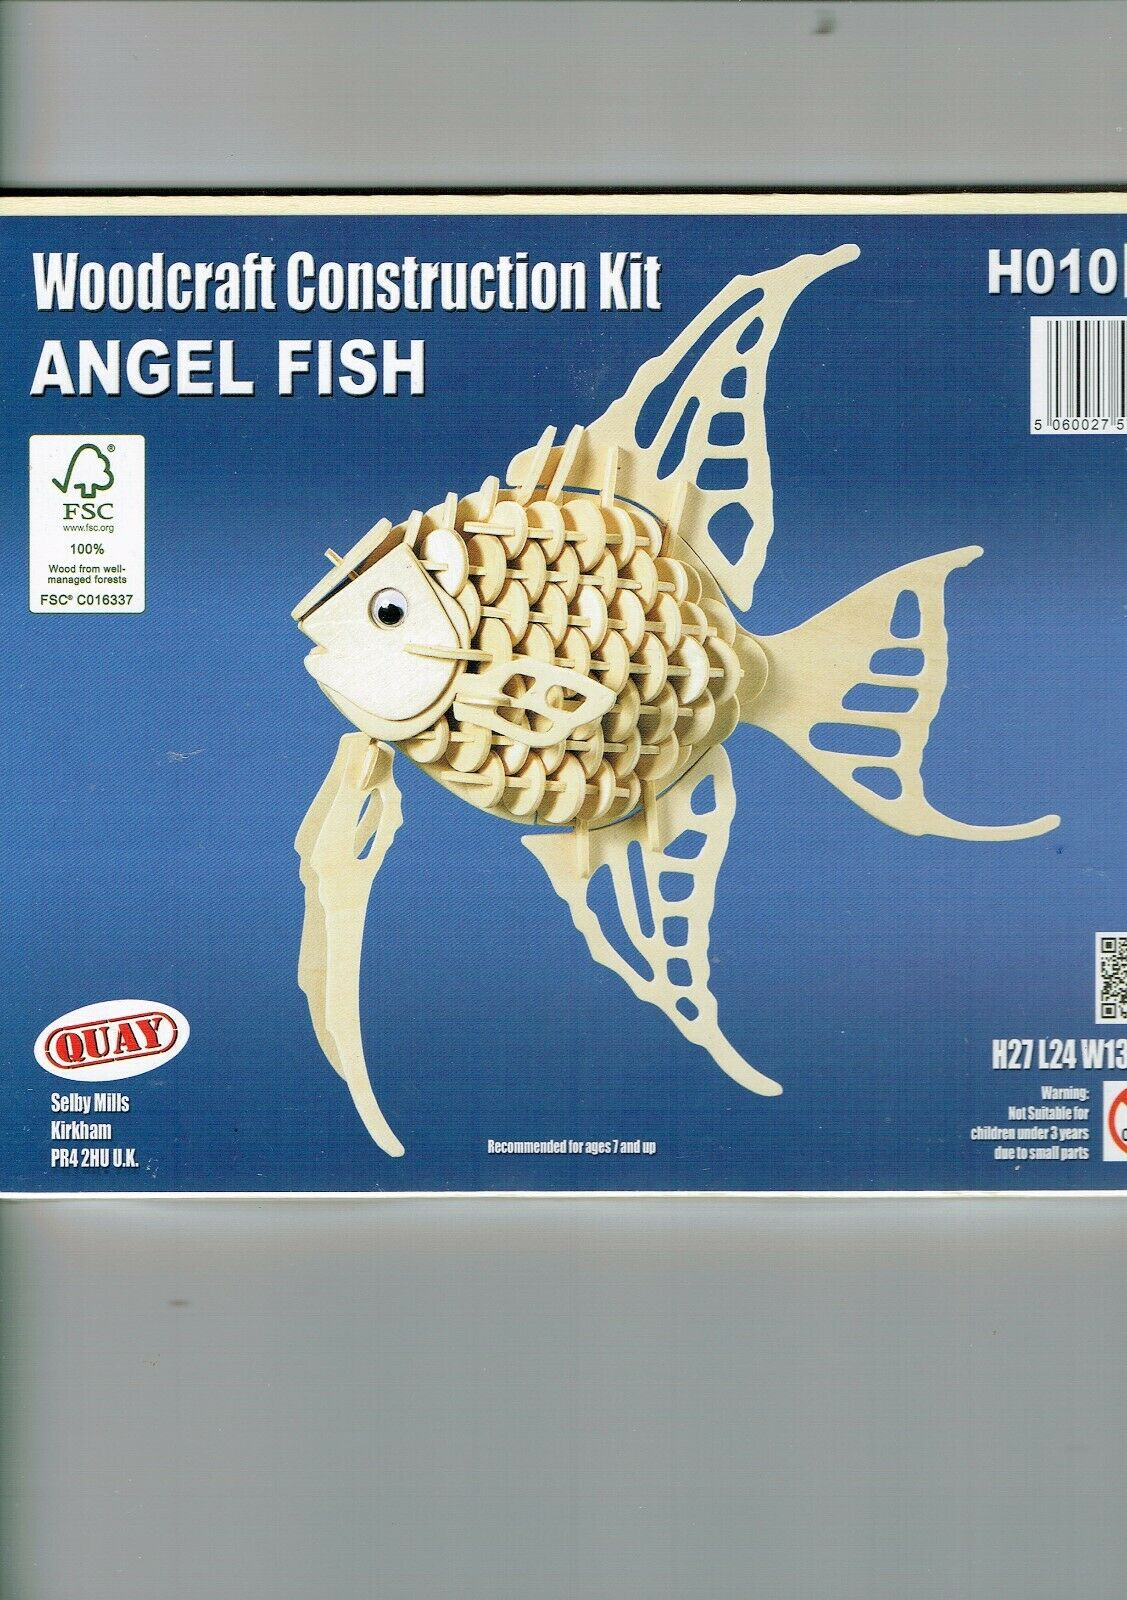 Woodcraft  Construction Kit  Childs Holz Modell 3D Puzzles Geduldspiele Of Fish